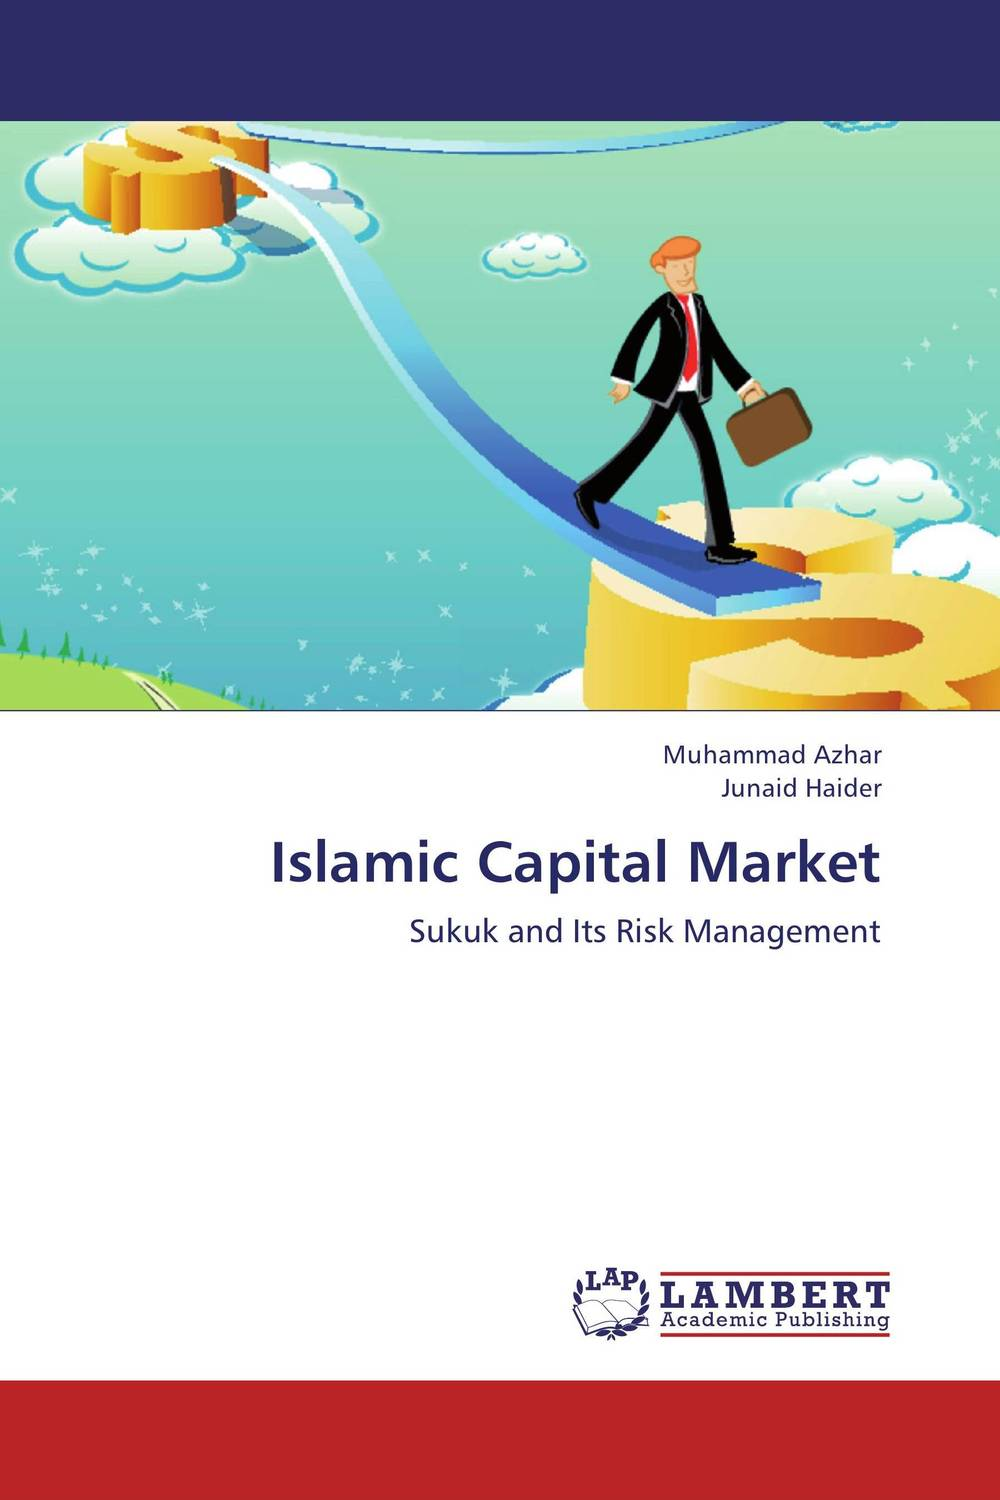 Фото Islamic Capital Market finance and investments